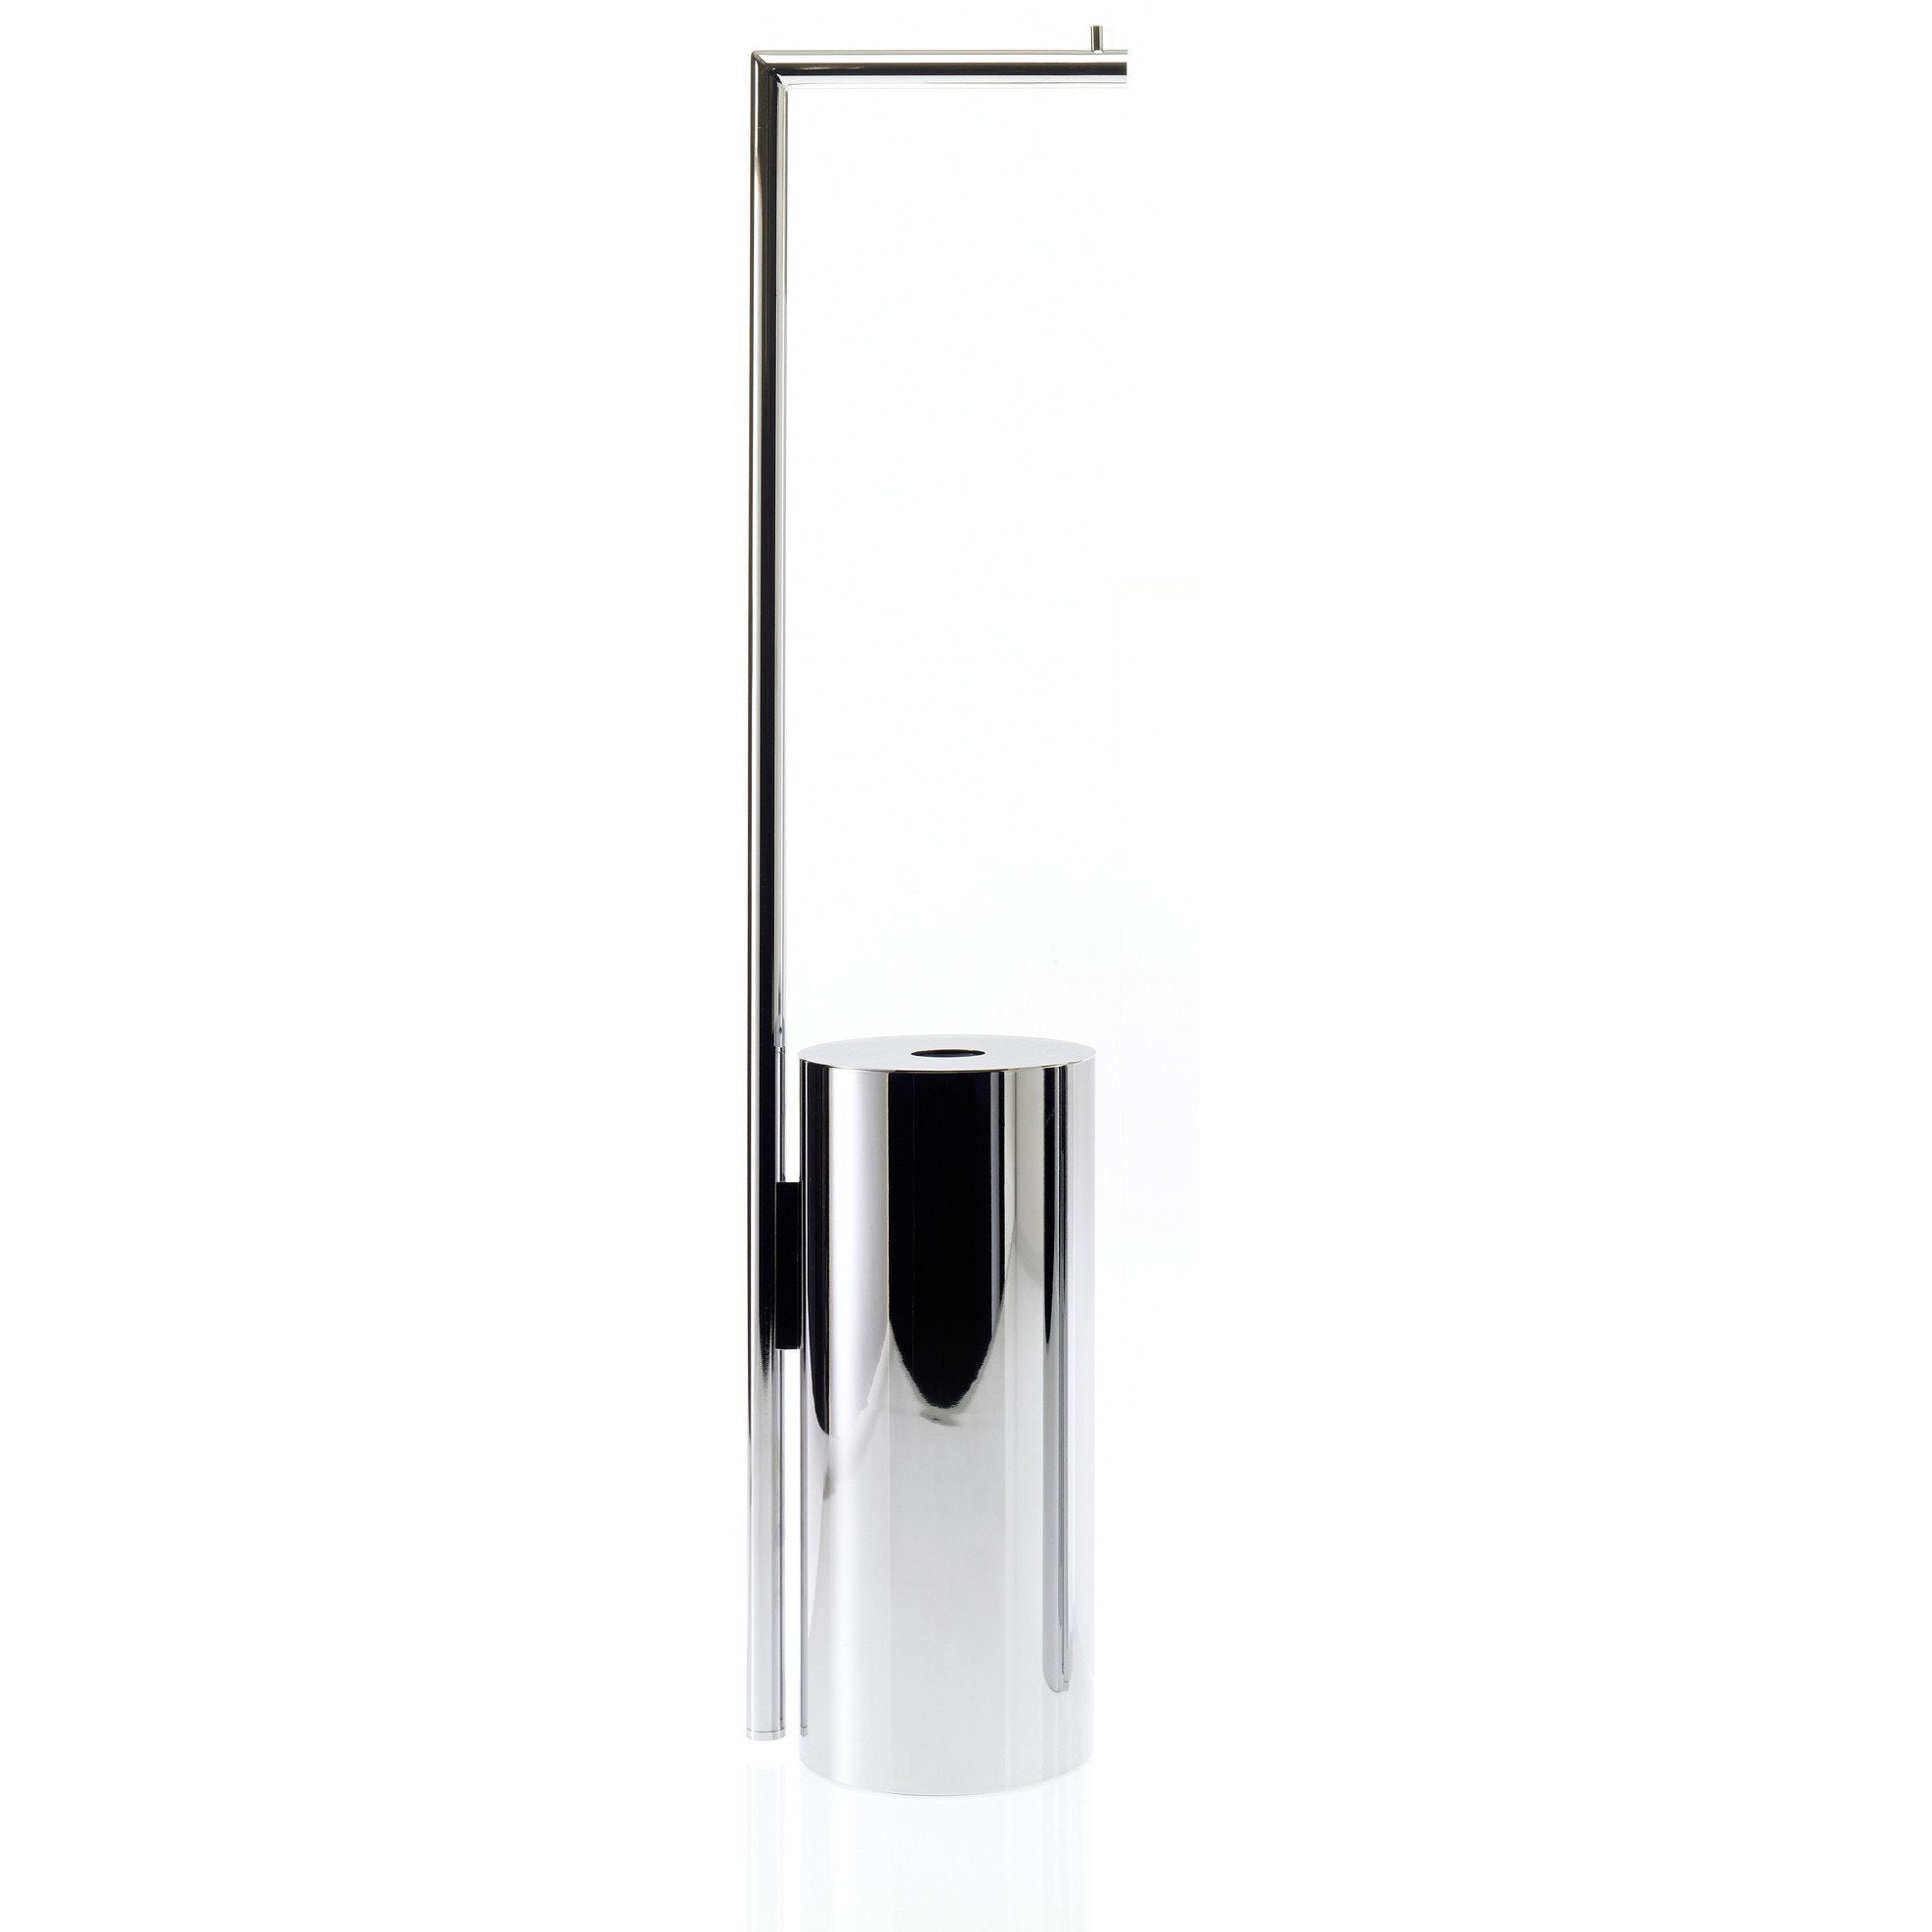 Straight 9 Free Standing Toilet Paper Holder W/ Spare Bin Storage. Chrome - AGM Home Store LLC